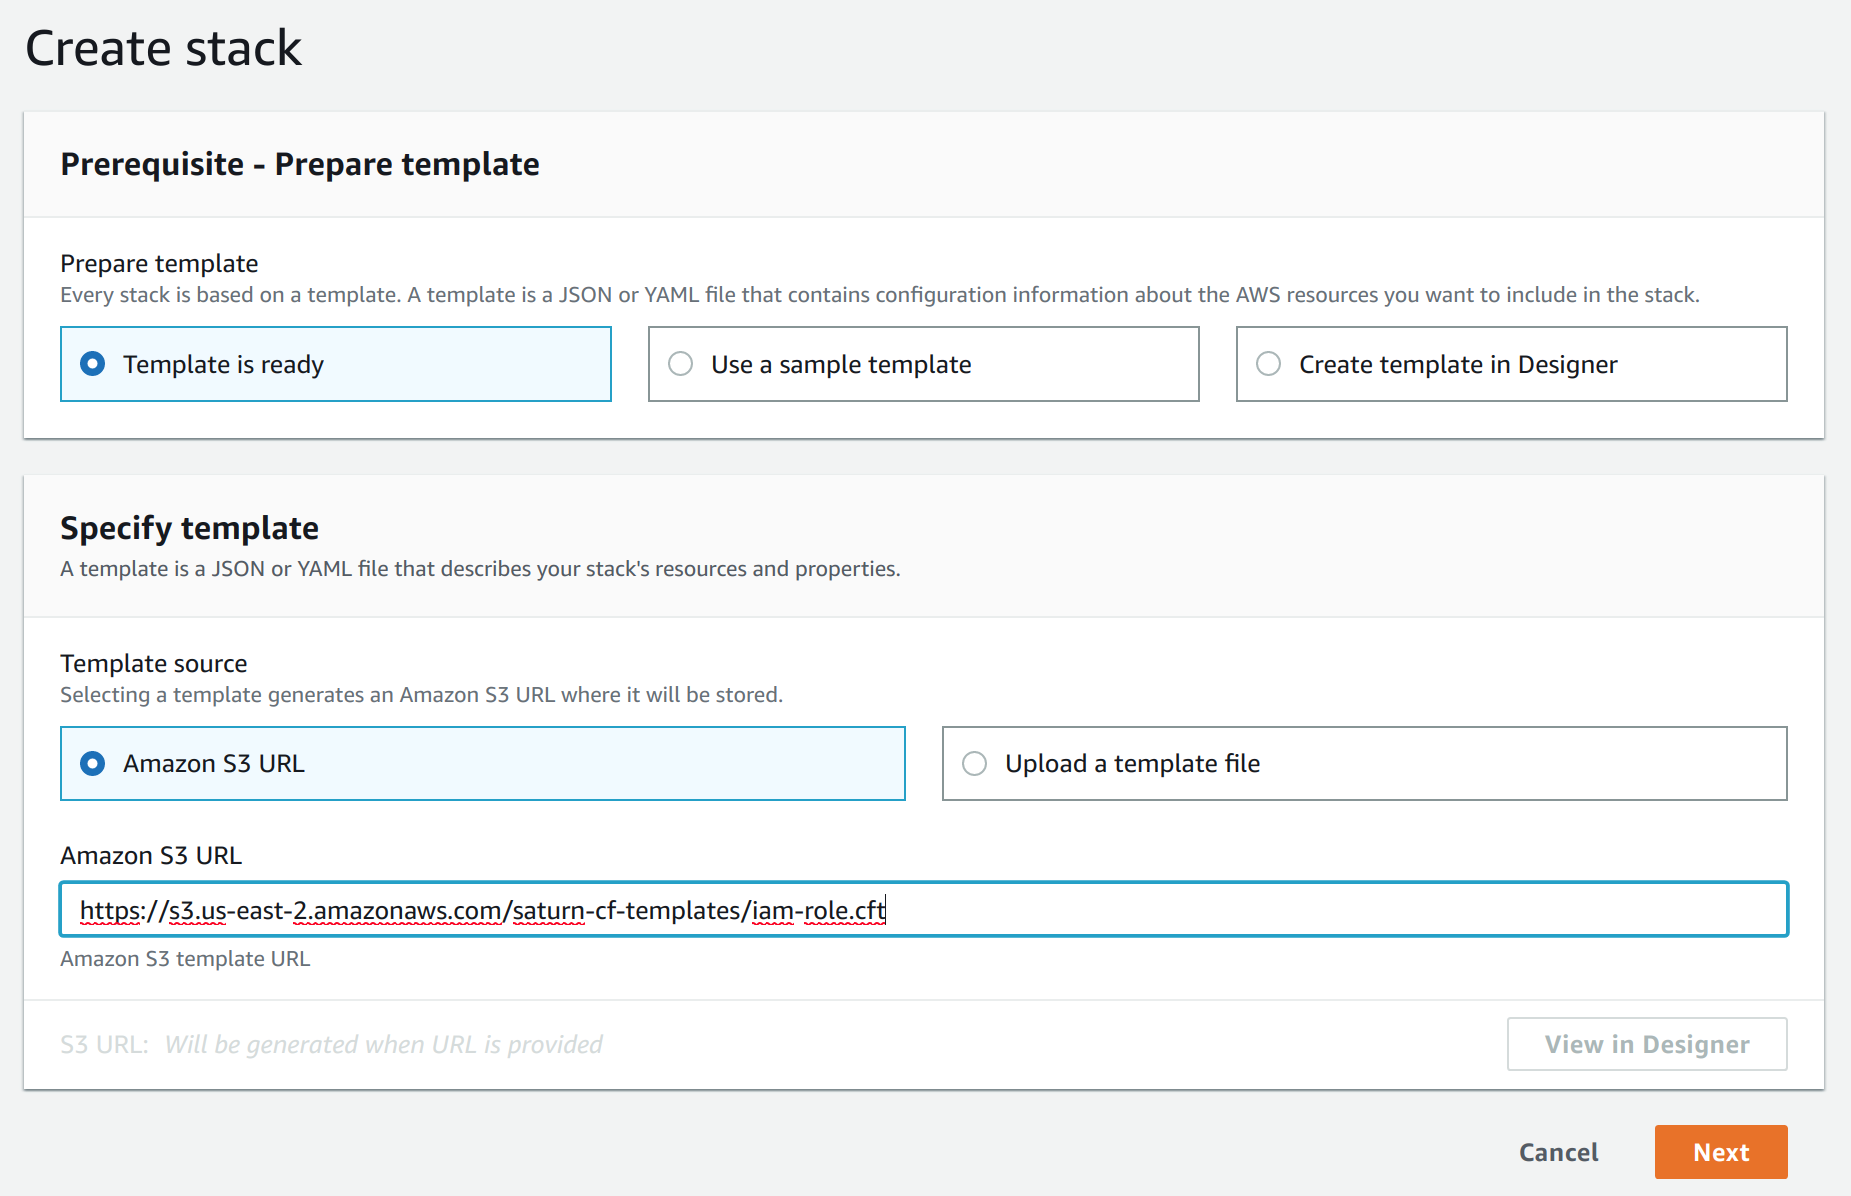 Screenshot of AWS Console showing Create Stack form